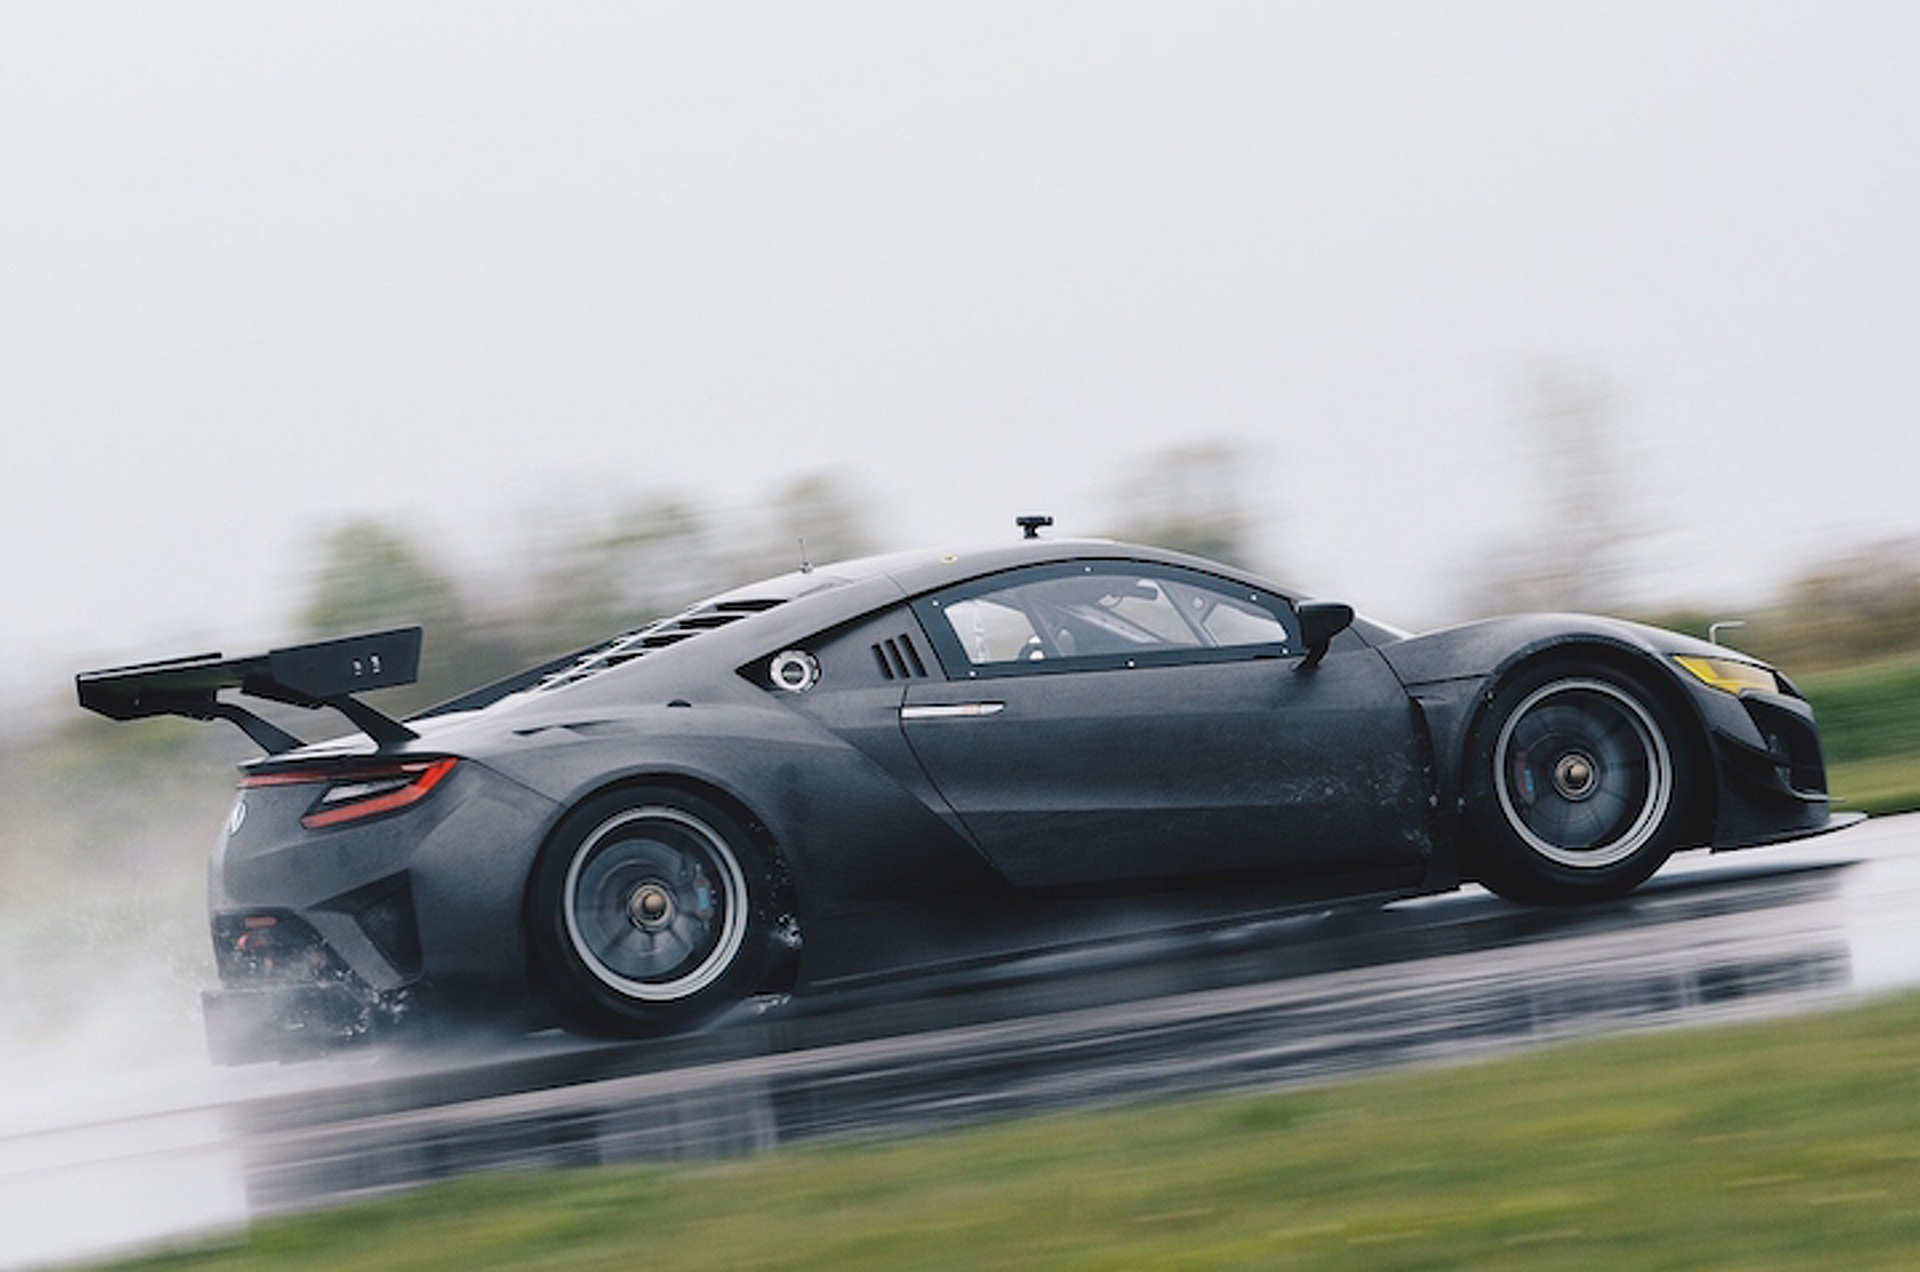 Acura Bares It All With the New NSX GT3 Race Car